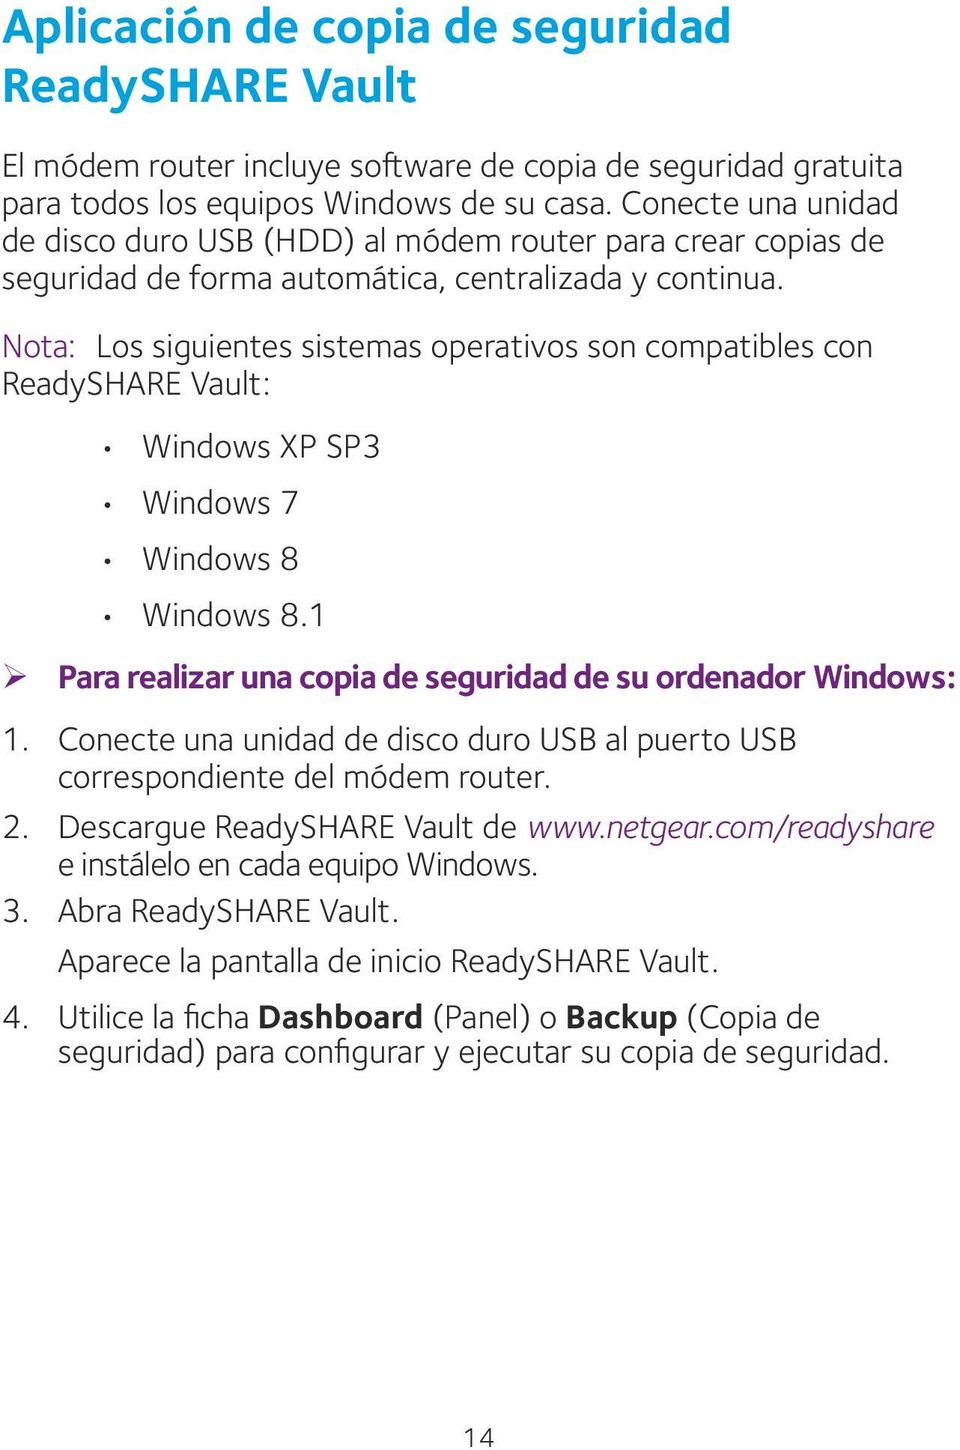 Nota: Los siguientes sistemas operativos son compatibles con ReadySHARE Vault: Windows XP SP3 Windows 7 Windows 8 Windows 8.1 ¾ Para realizar una copia de seguridad de su ordenador Windows: 1.